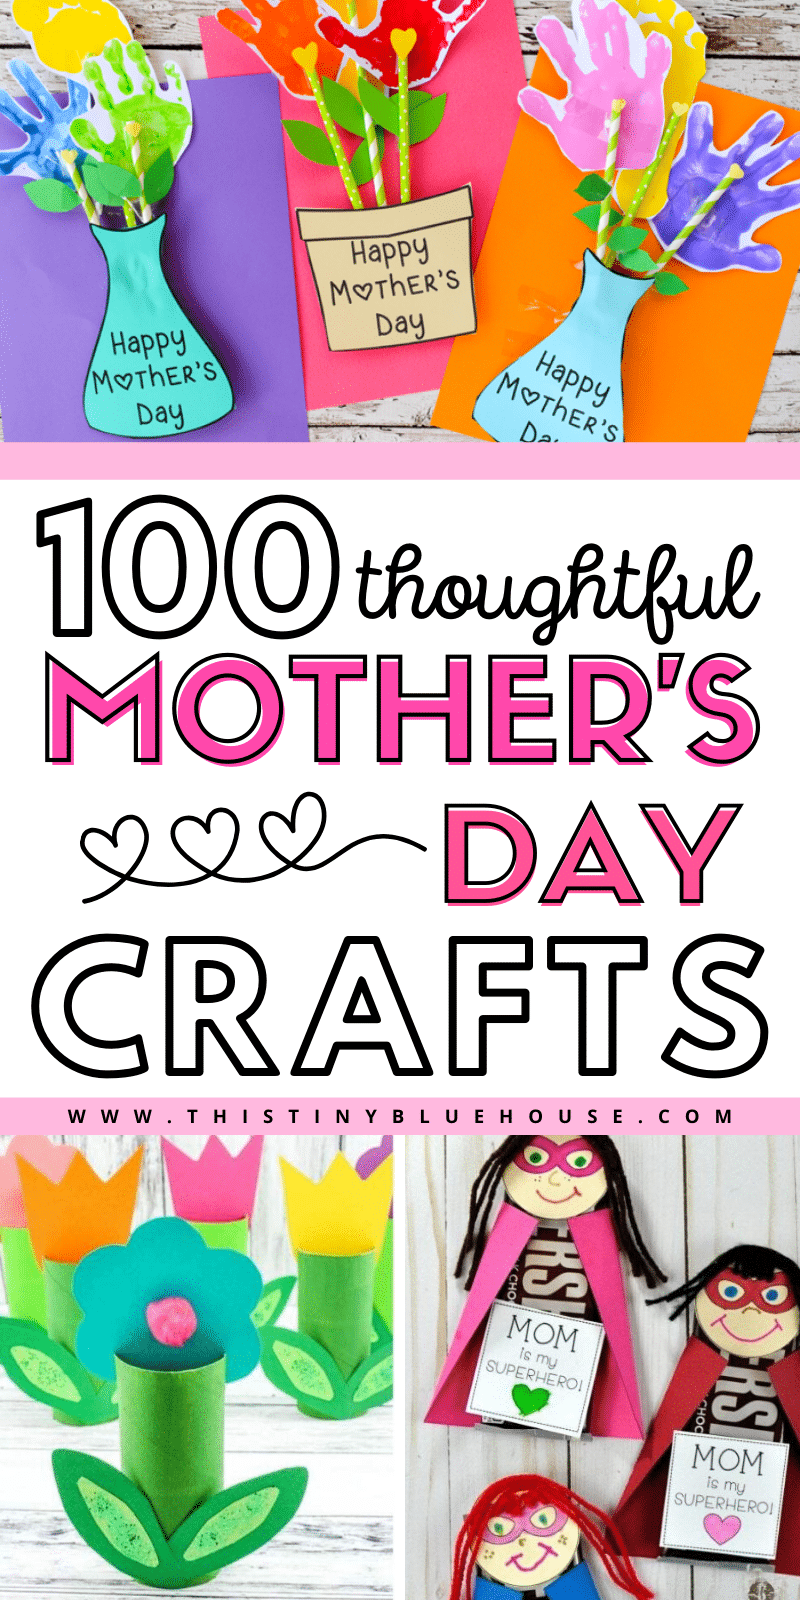 are you looking for the perfect thoughtful and sweet Mother's day gift idea that you can make this year? Here are 100 sweet Mother's day crafts that are perfect for showing mom just how much she means to you. #mothersdaycrafts #mothersdaycraftsforkids #mothersdaycraftsforkidseasy #mothersdaycraftsforkidspreschool #mothersdaycraftsforkidstoddlers #mothersdaycraftspreschool